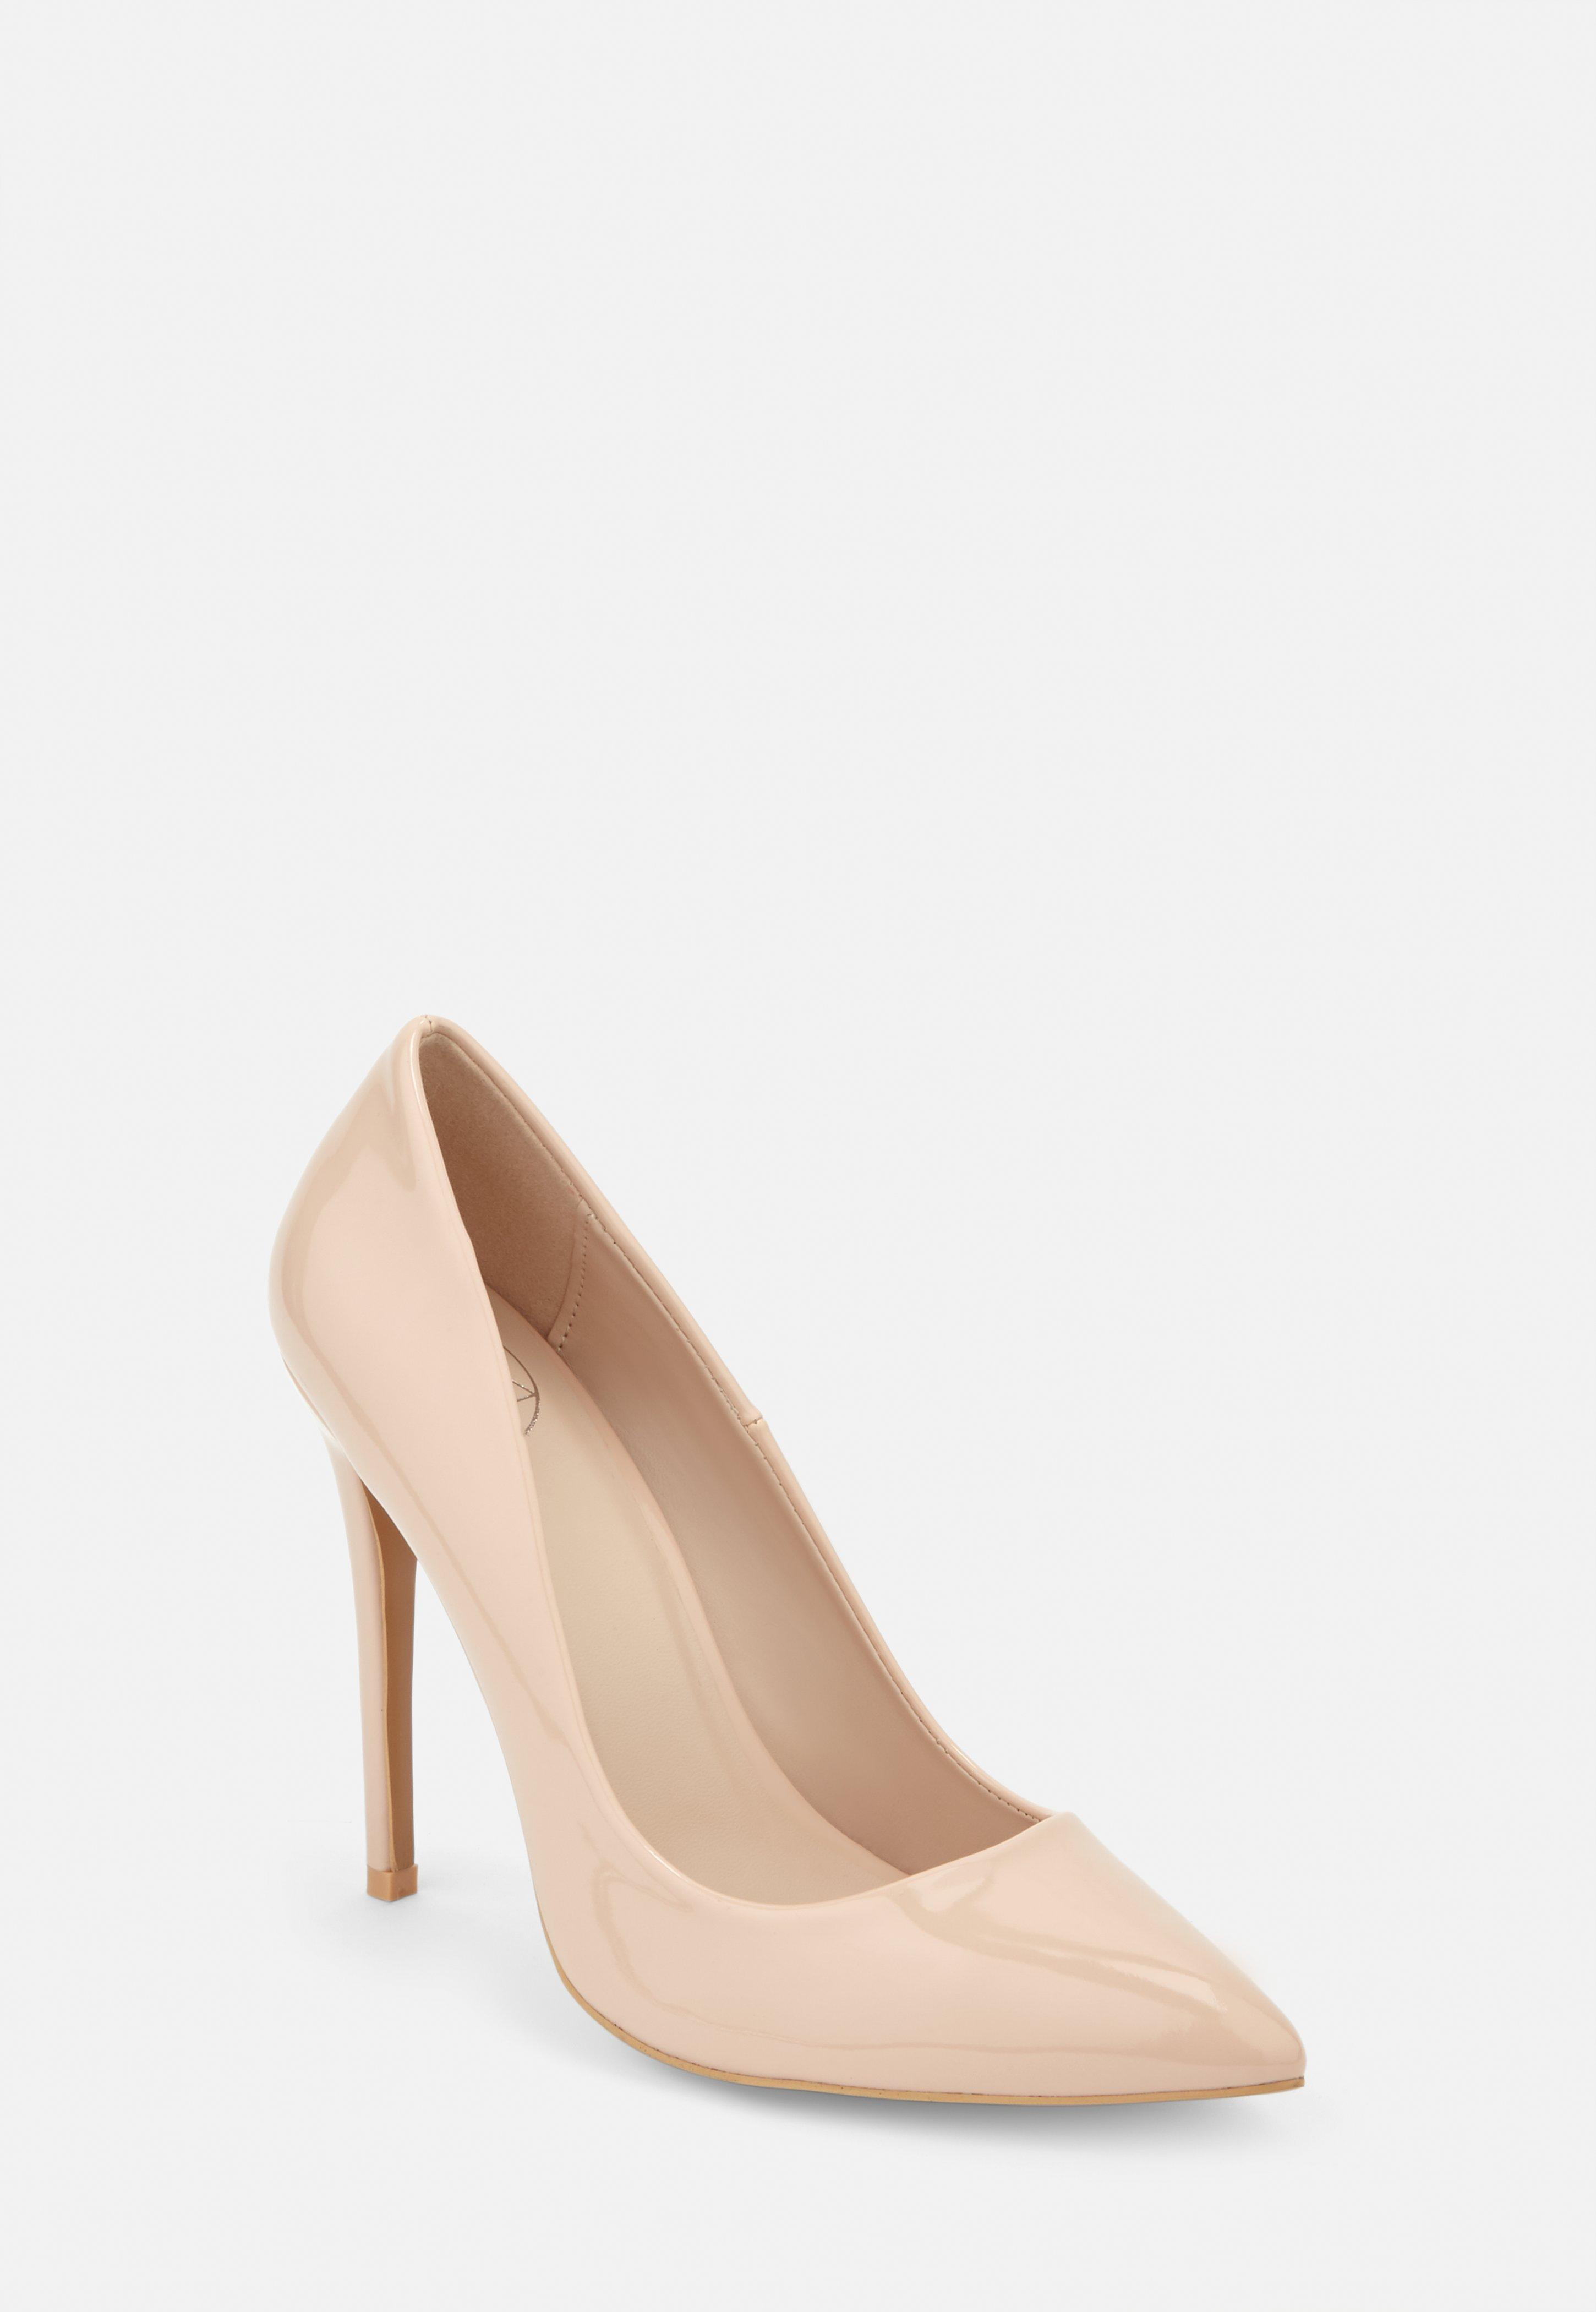 877a492db61 Nude Patent Wide Fit Court Heels